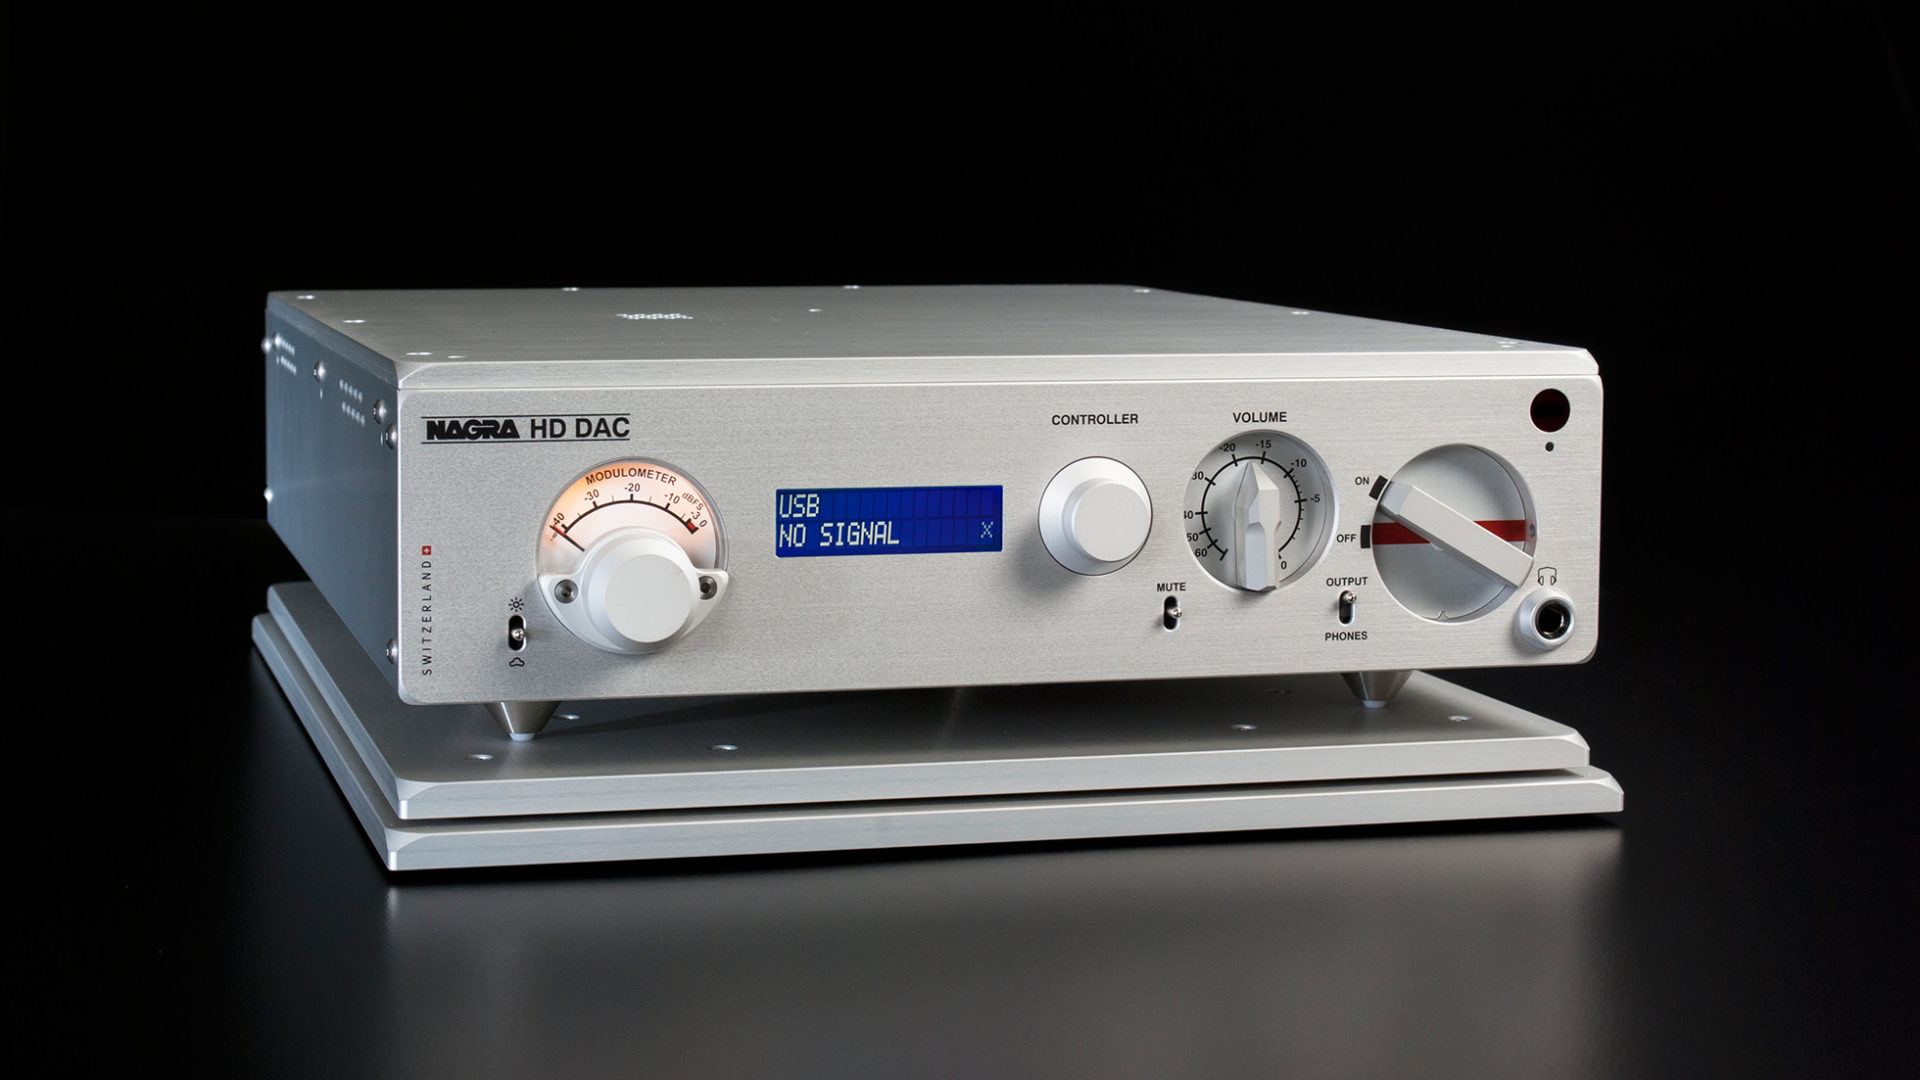 Nagra HD DAC modulo best digital to analog converter front